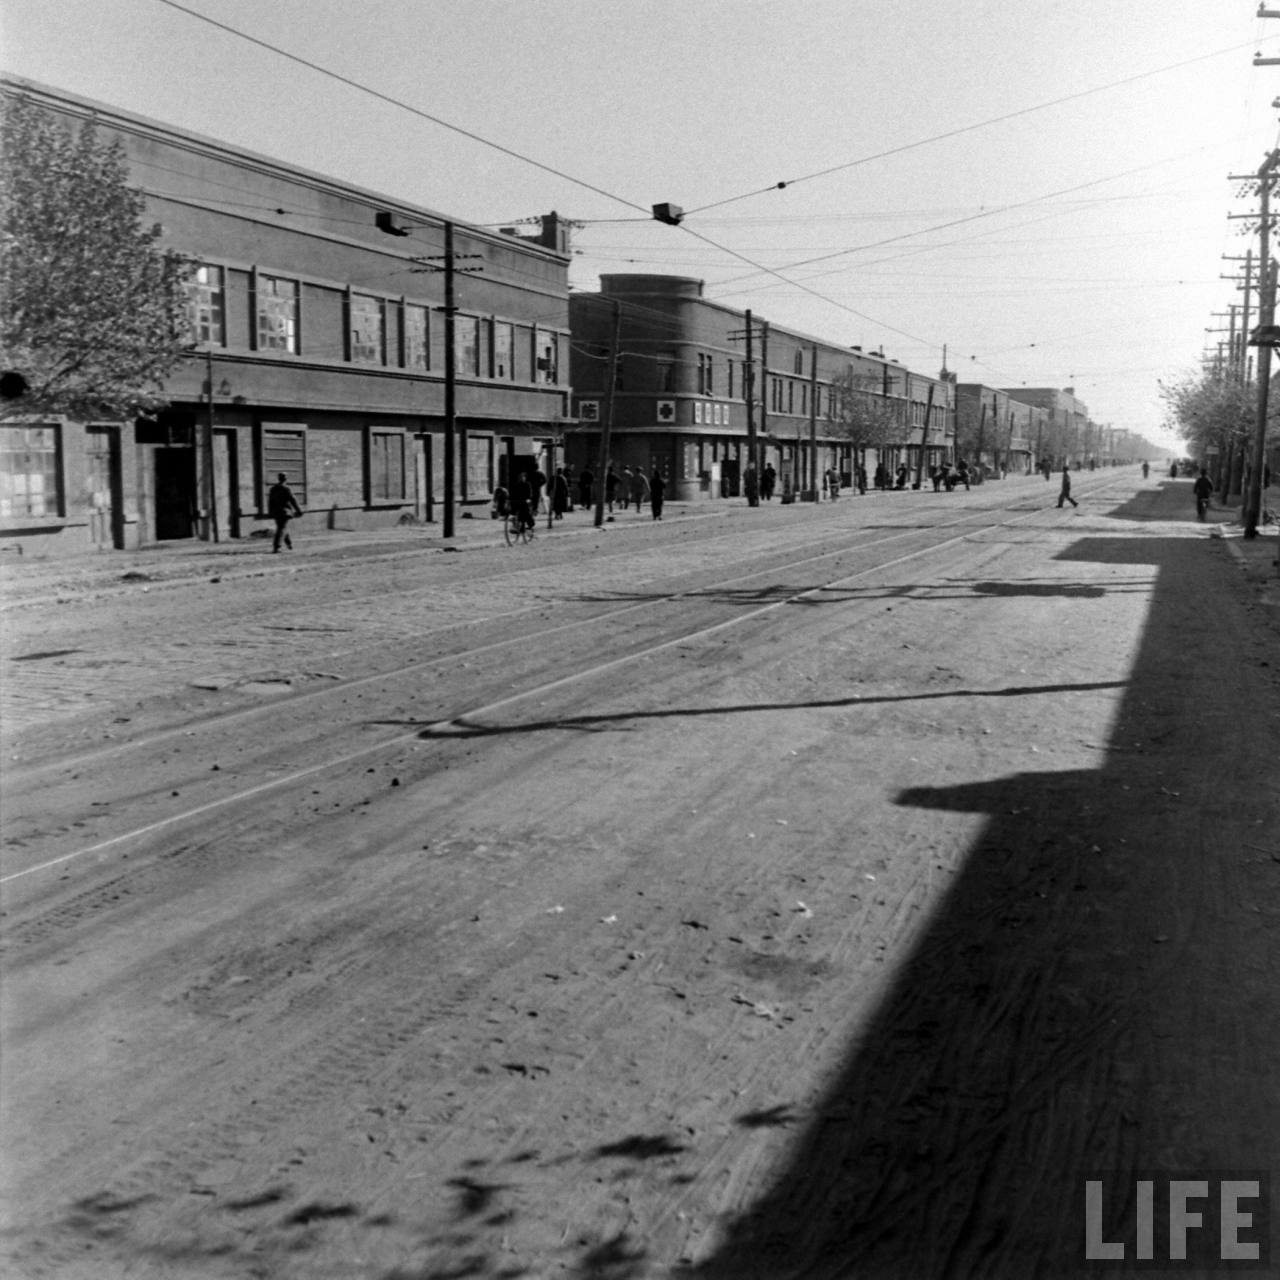 The lonely streets of Shenyang circa 1948